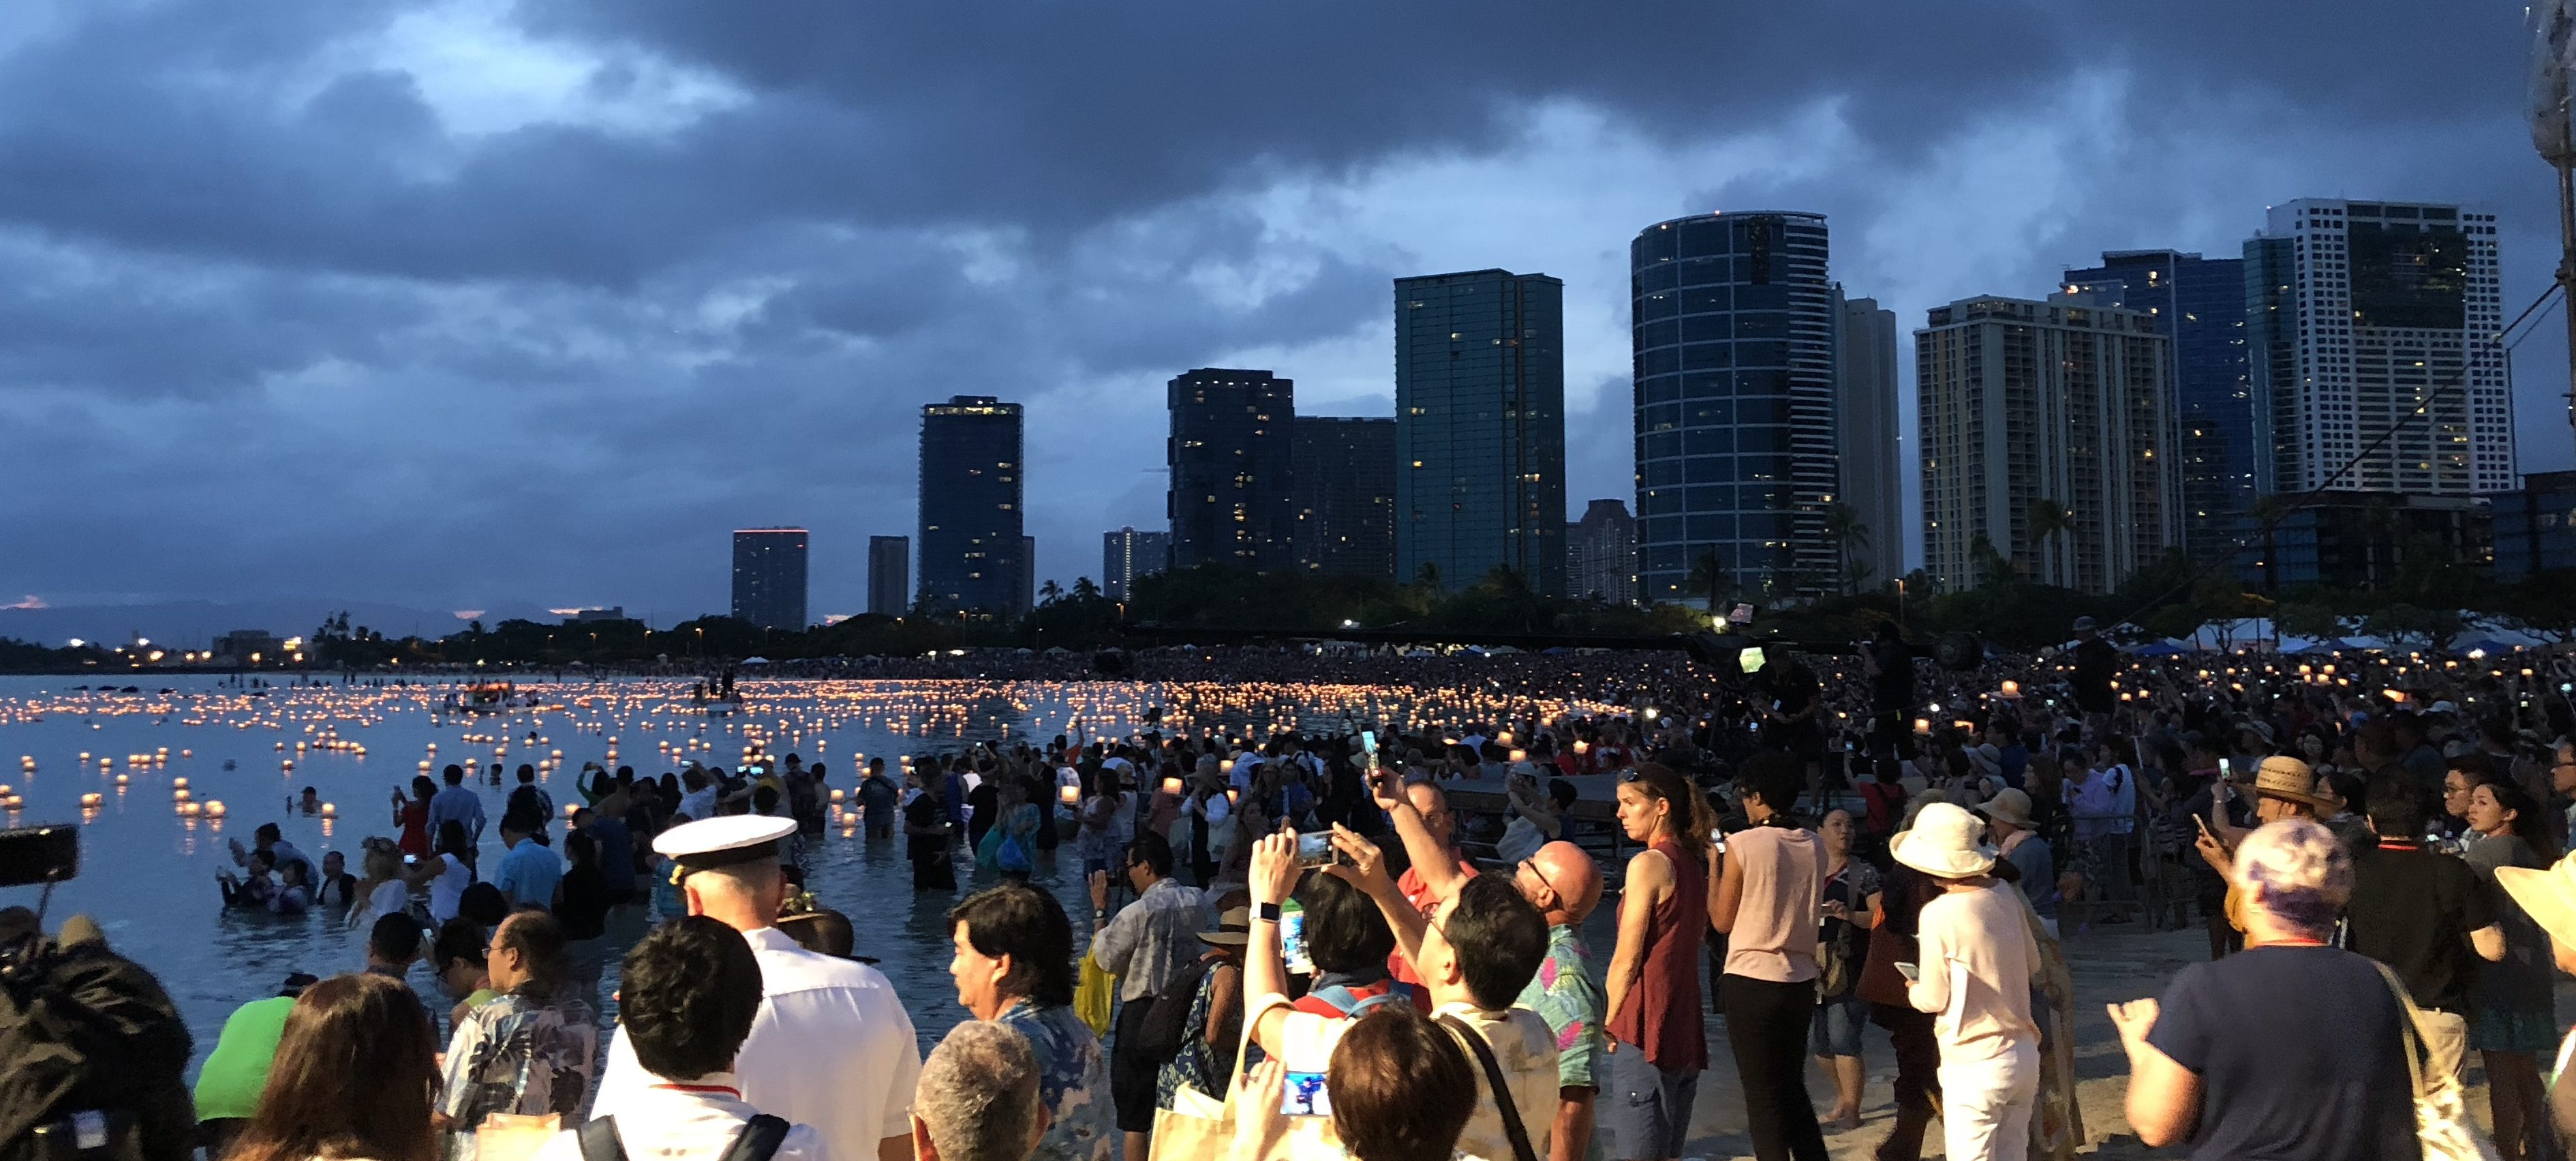 With the Dead in Paradise: American Memorial Day, Floating Lanterns, and Free-Floating Spirituality